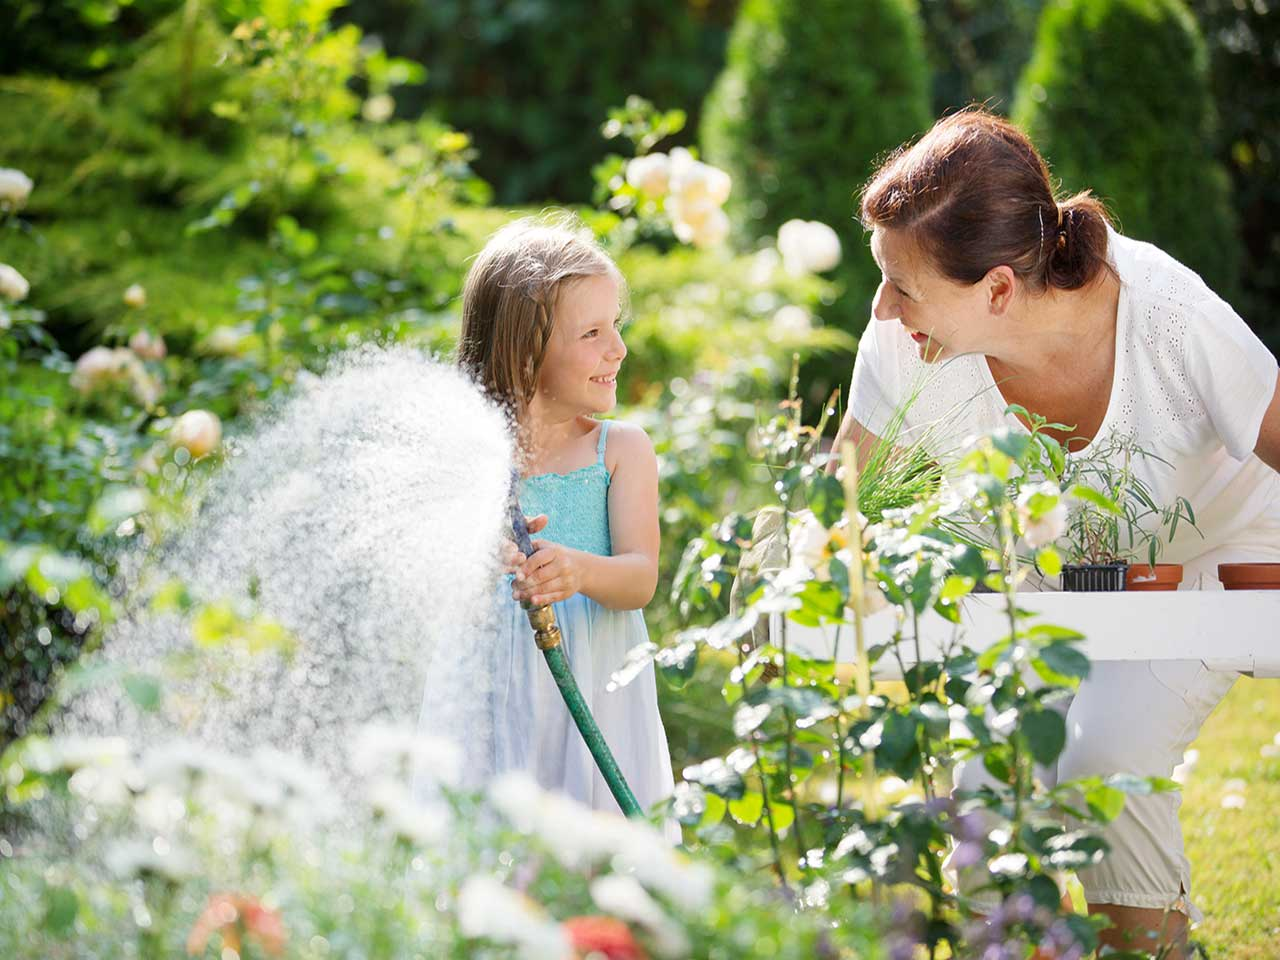 Woman playing in the summer garden with her grandchild